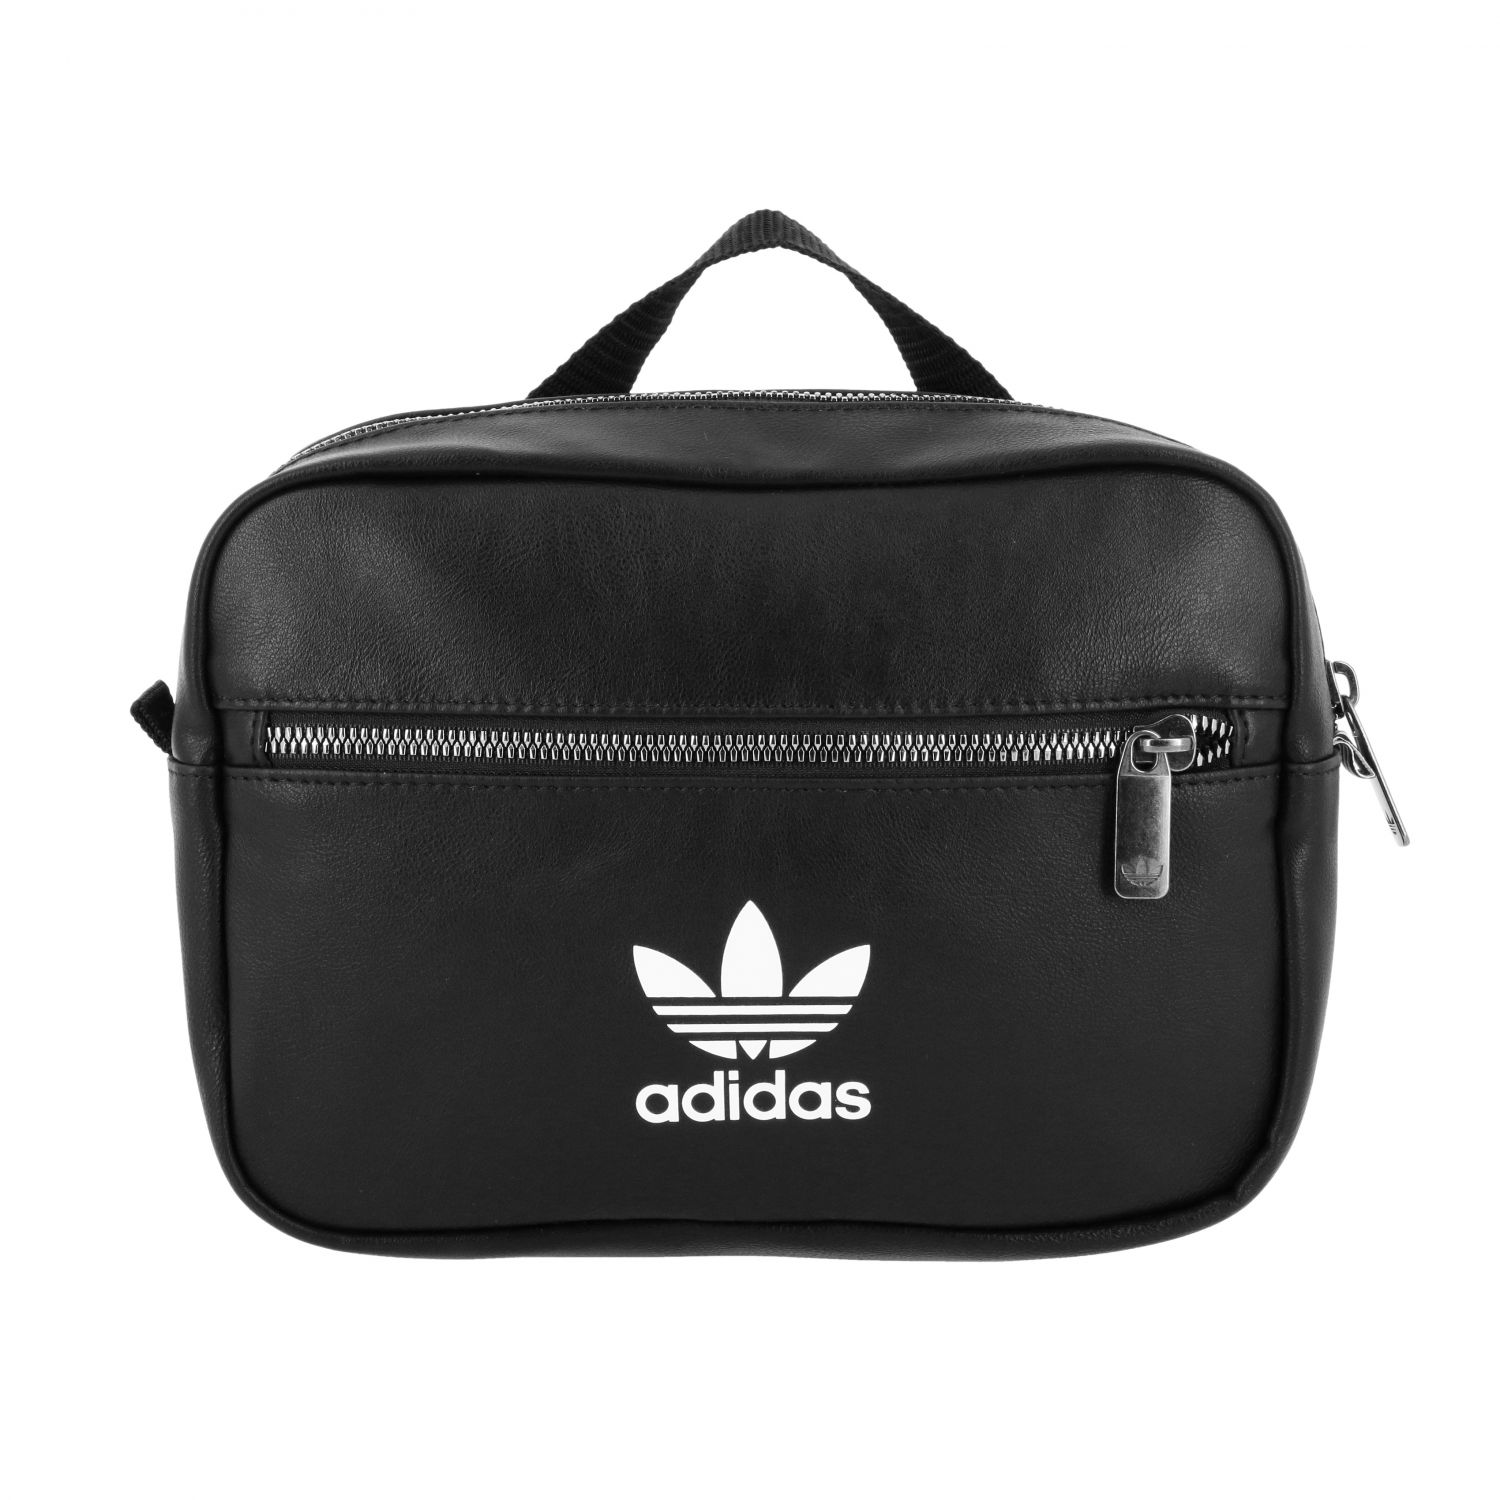 Bolso mini Adidas Originals: Bolso mini niños Adidas Originals negro 1